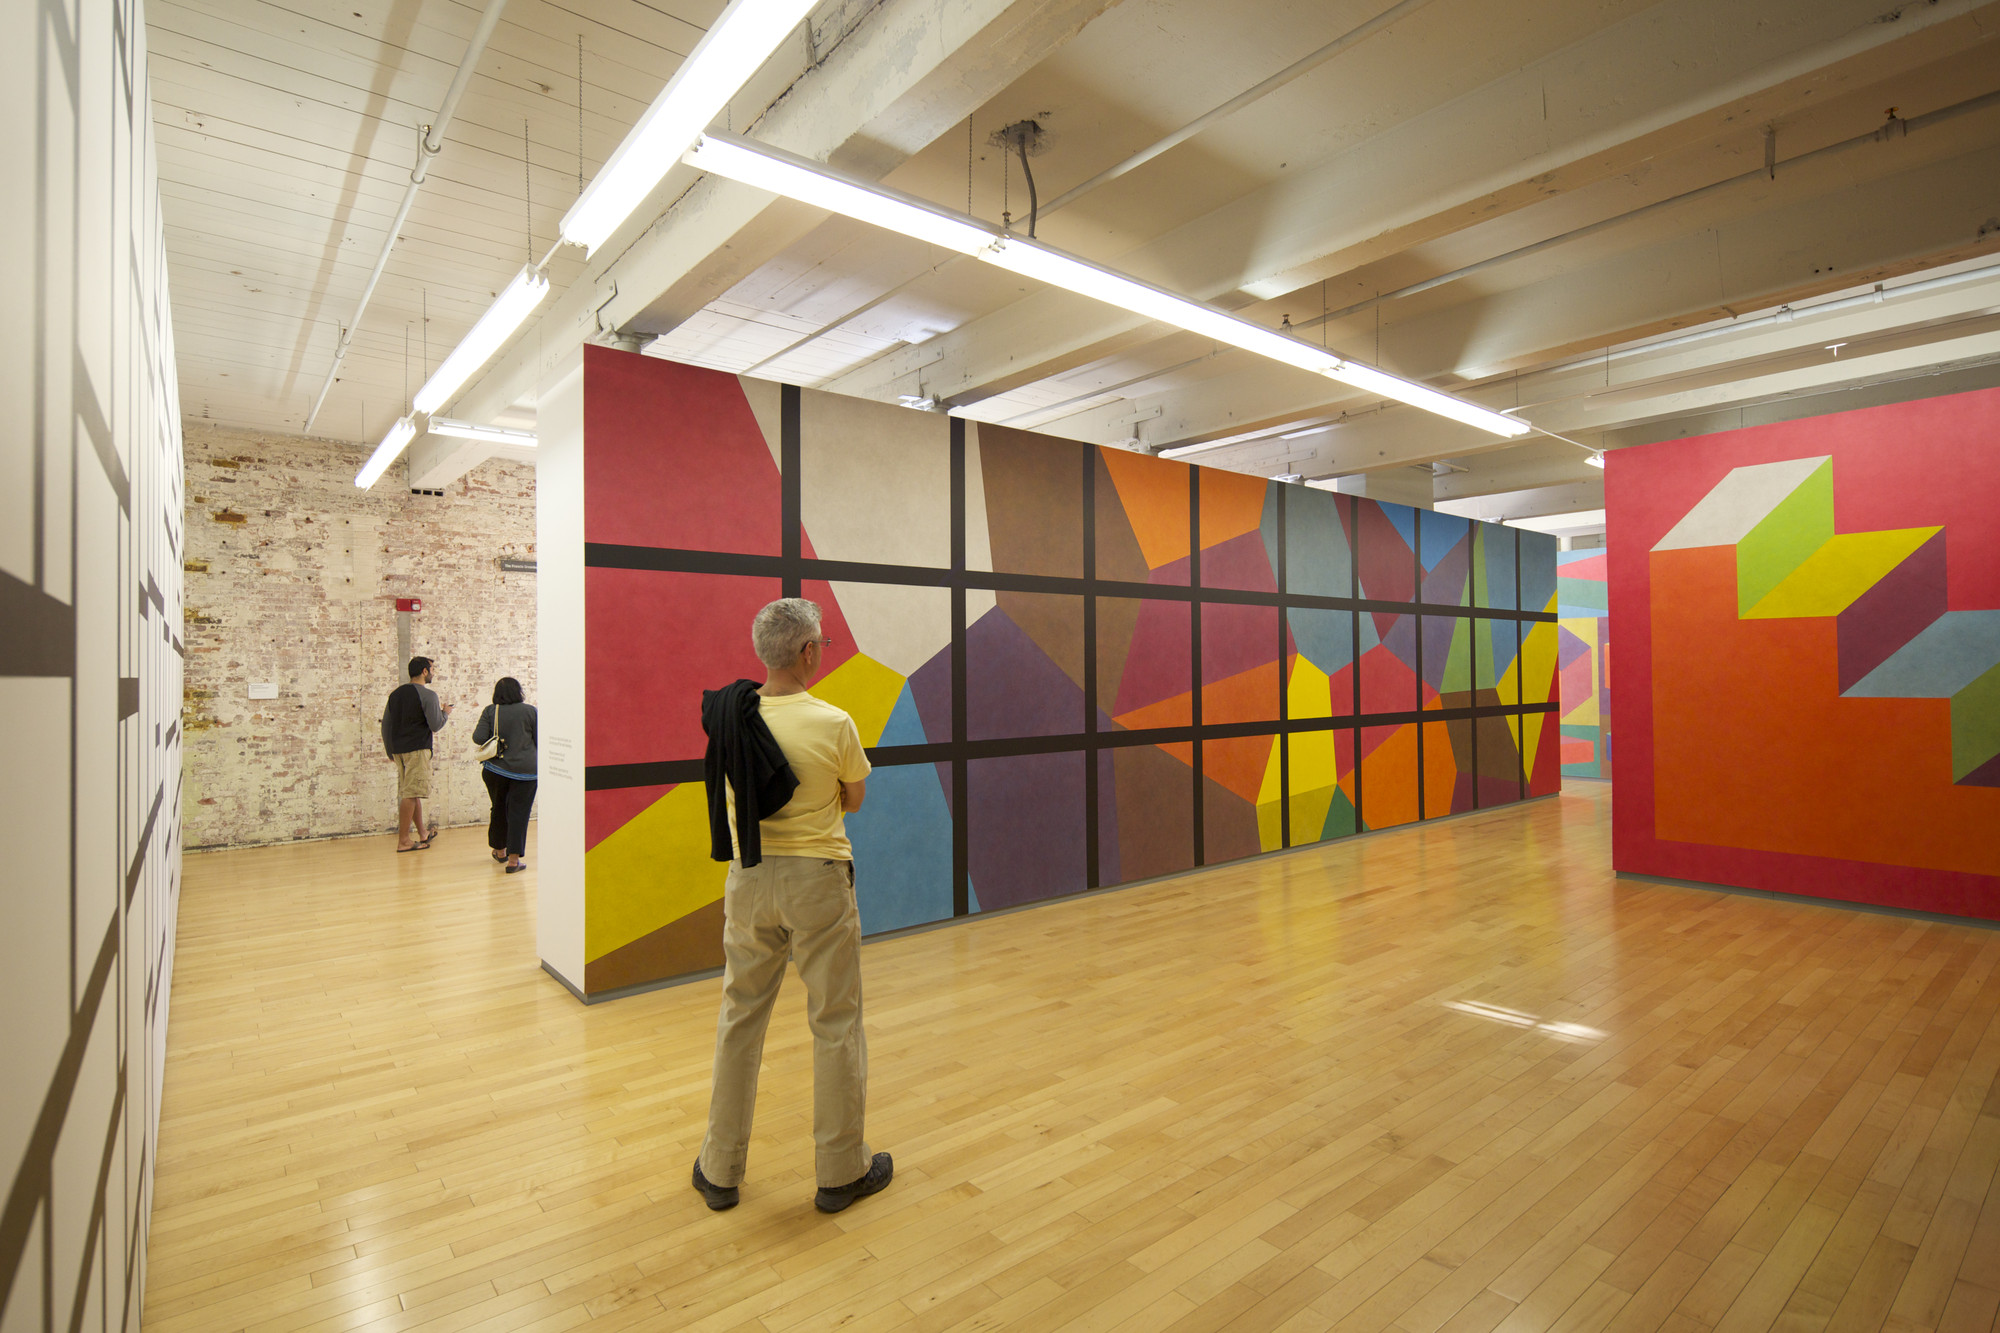 Sol LeWitt, Wall Drawing 692: Continuous forms with color in washes superimposed. (1991) MASS MoCA, North Adams, MA